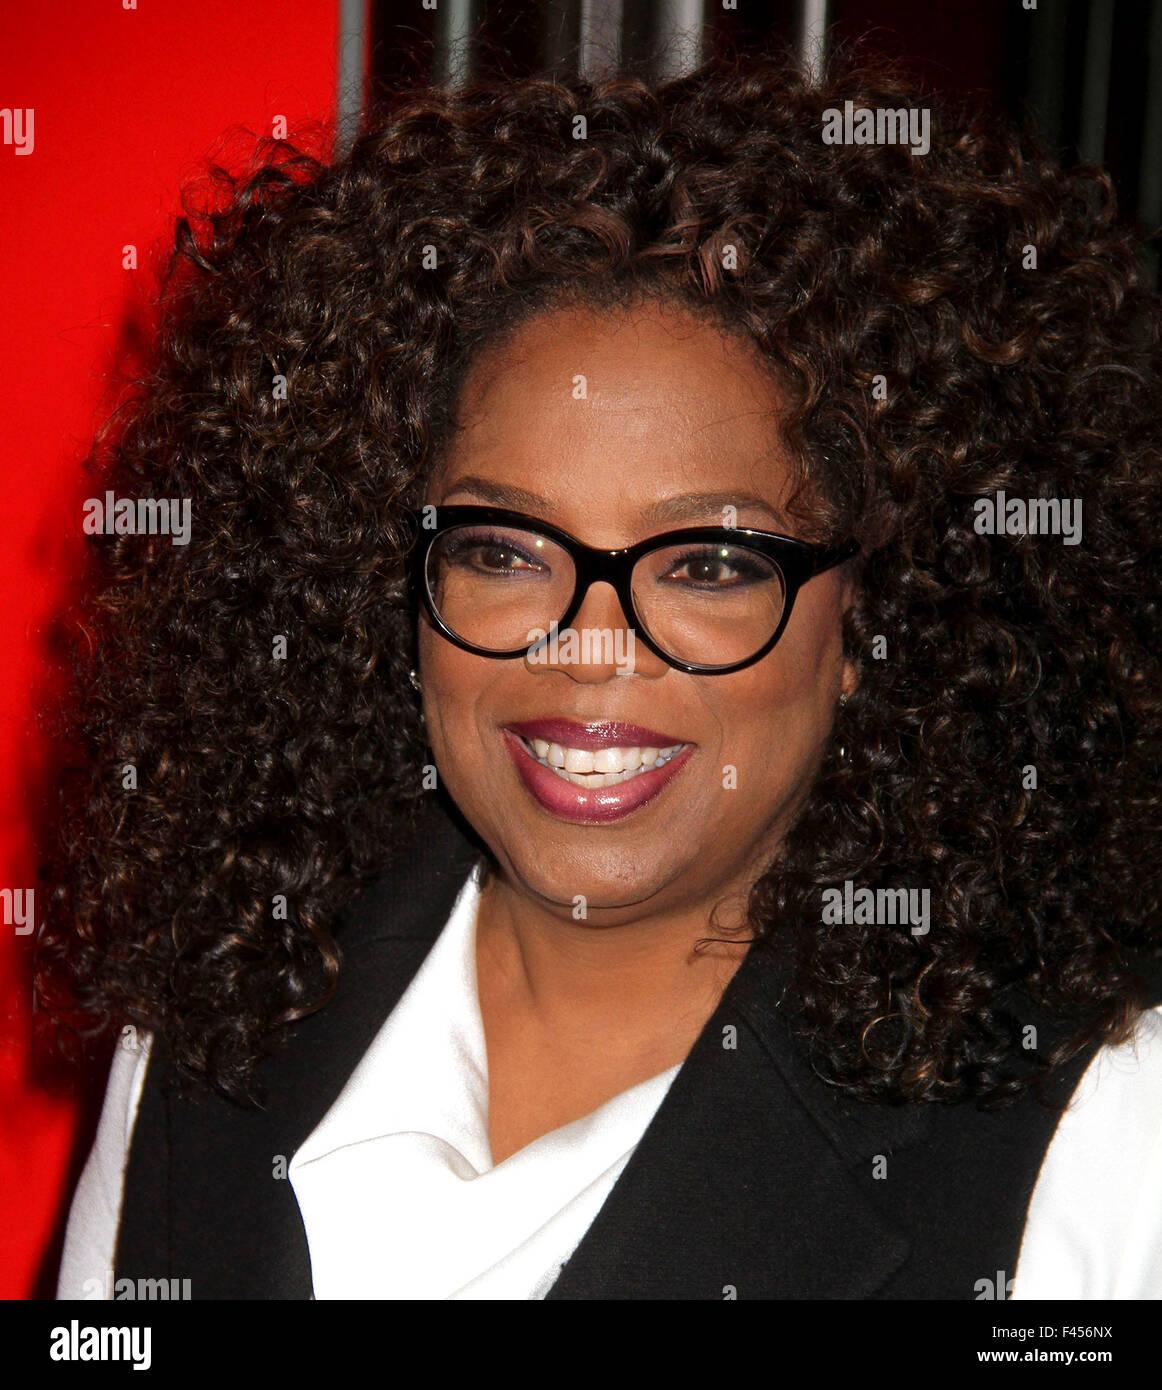 New York, USA. 14th Oct, 2015. OPRAH WINFREY attends the OWN premiere of the landmark 7- day TV event 'Belief' - Stock Image